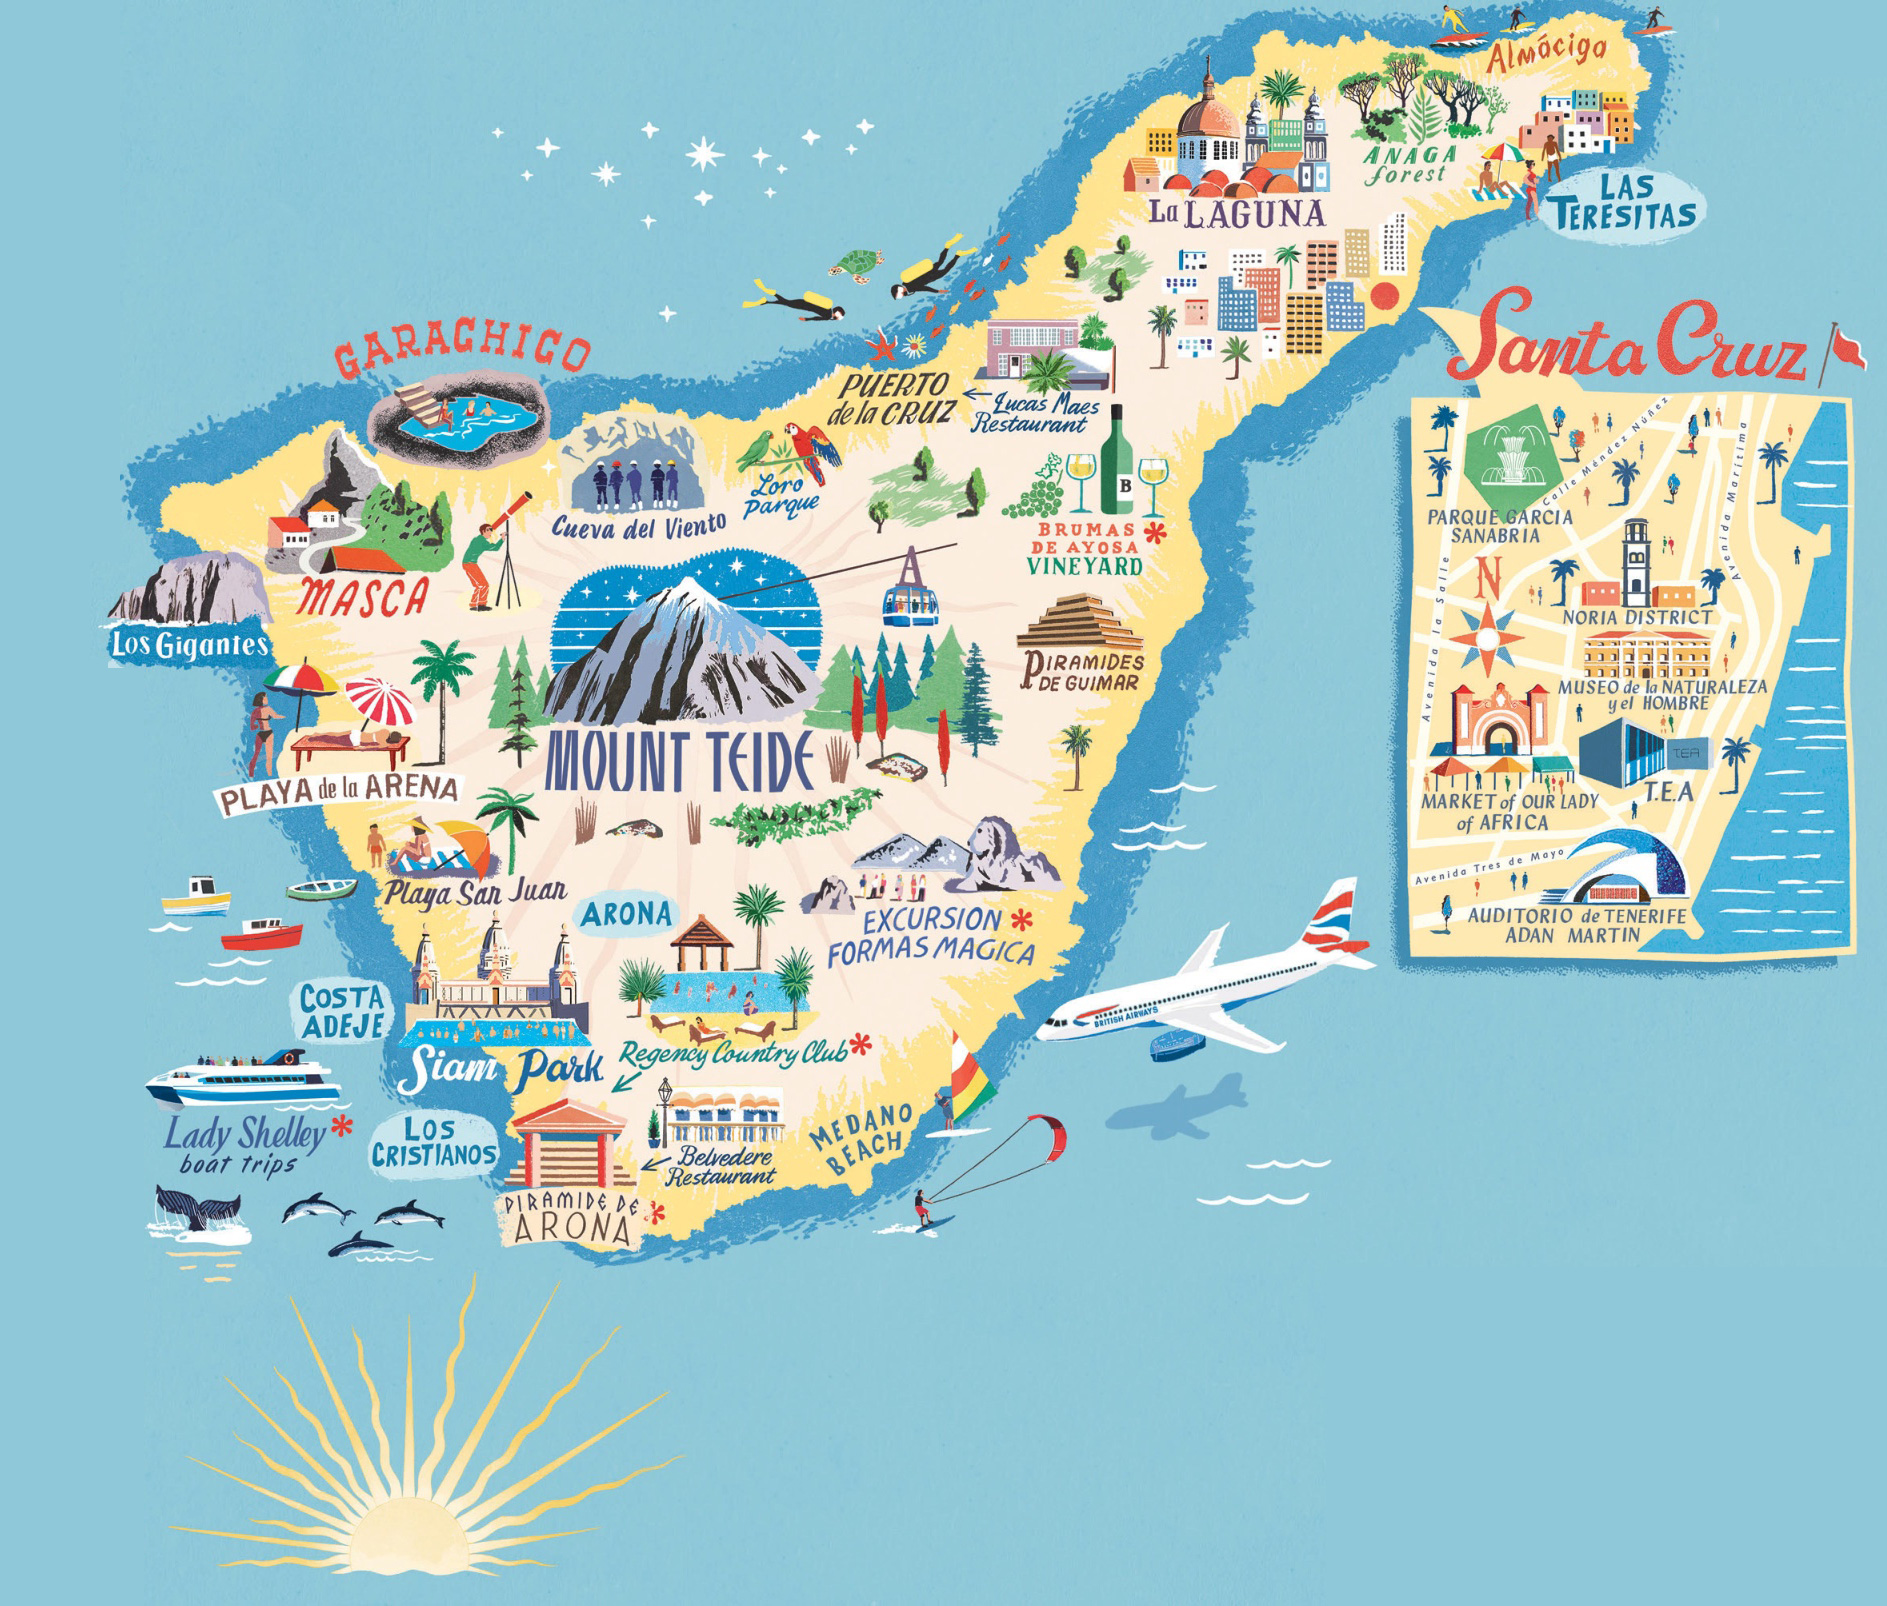 Tenerife Map: Places of Interest